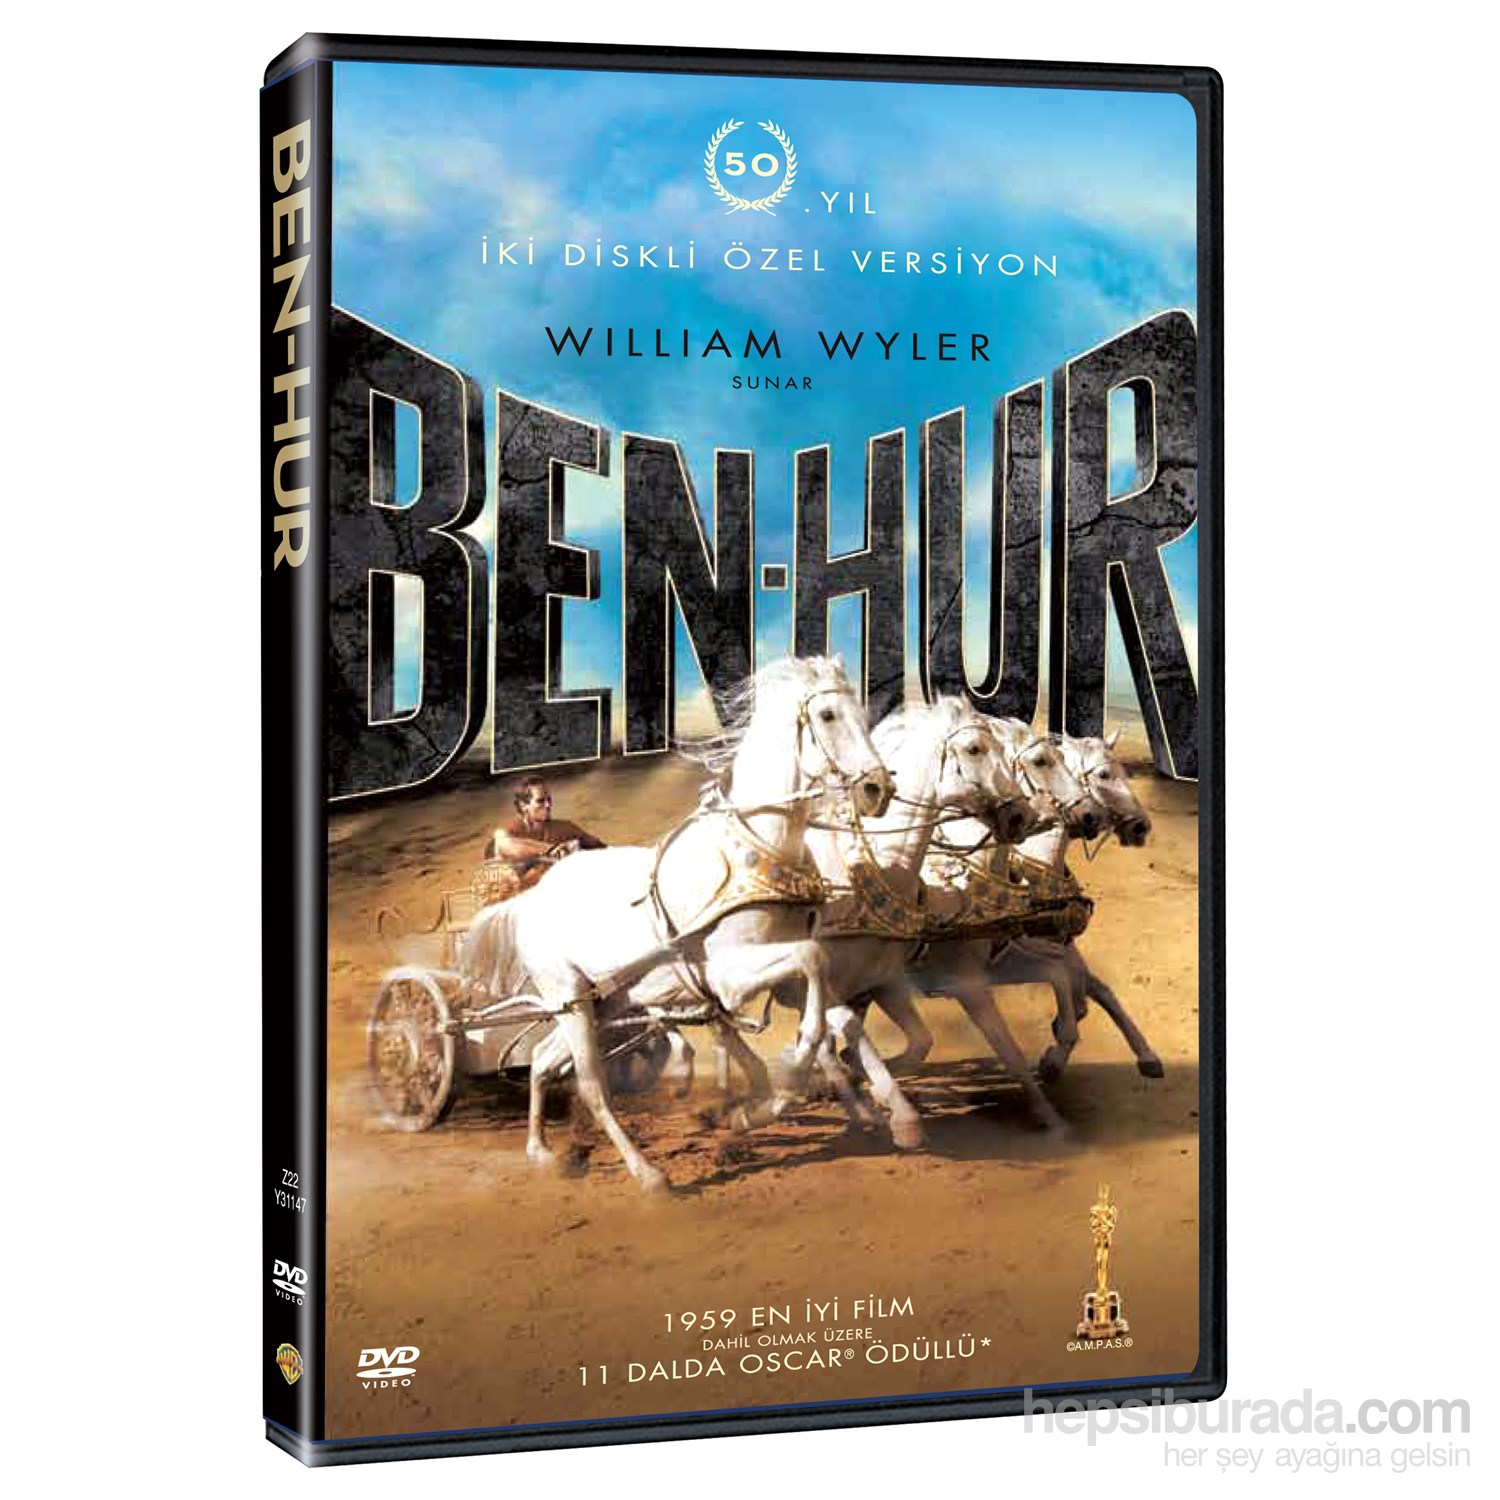 ben hur singles over 50 What happened in 1960 - news, movies, singles and albums growing up in the 50's and 60's  1960 - news and entertainment  ben hur best actor oscar charlton.